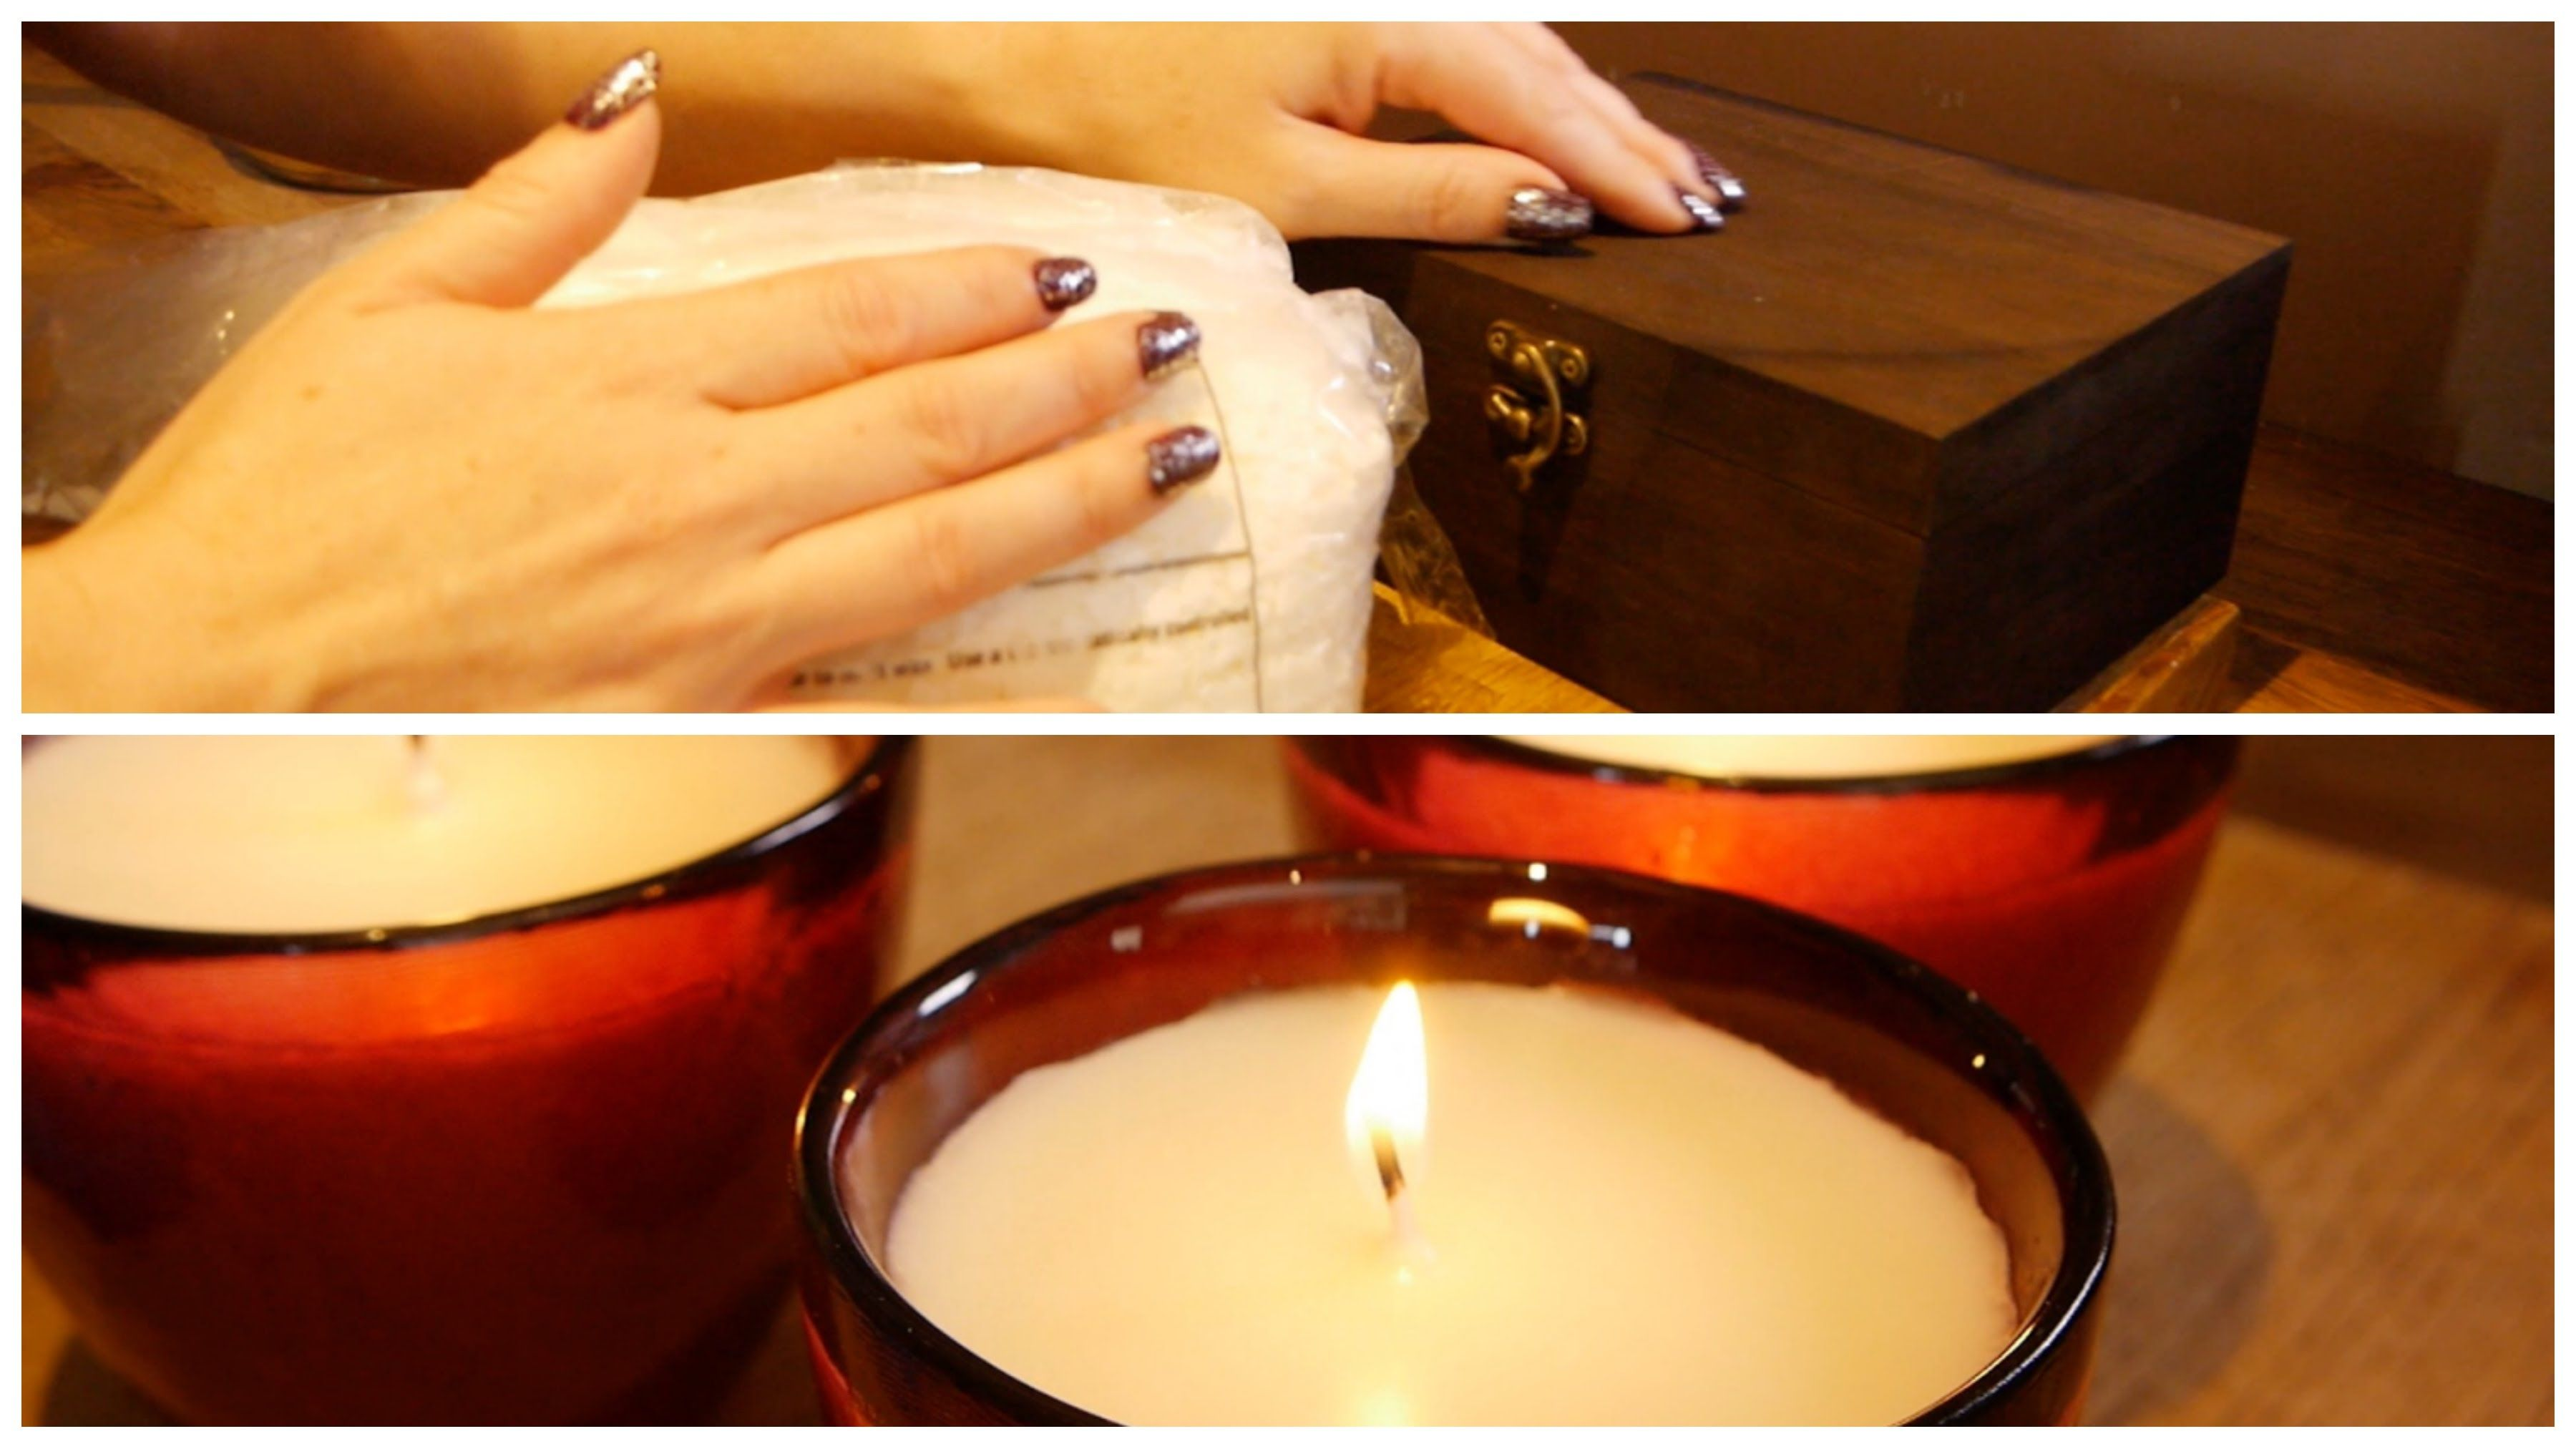 ASMR Soy Candle Making Essential Oils, Wax Flakes